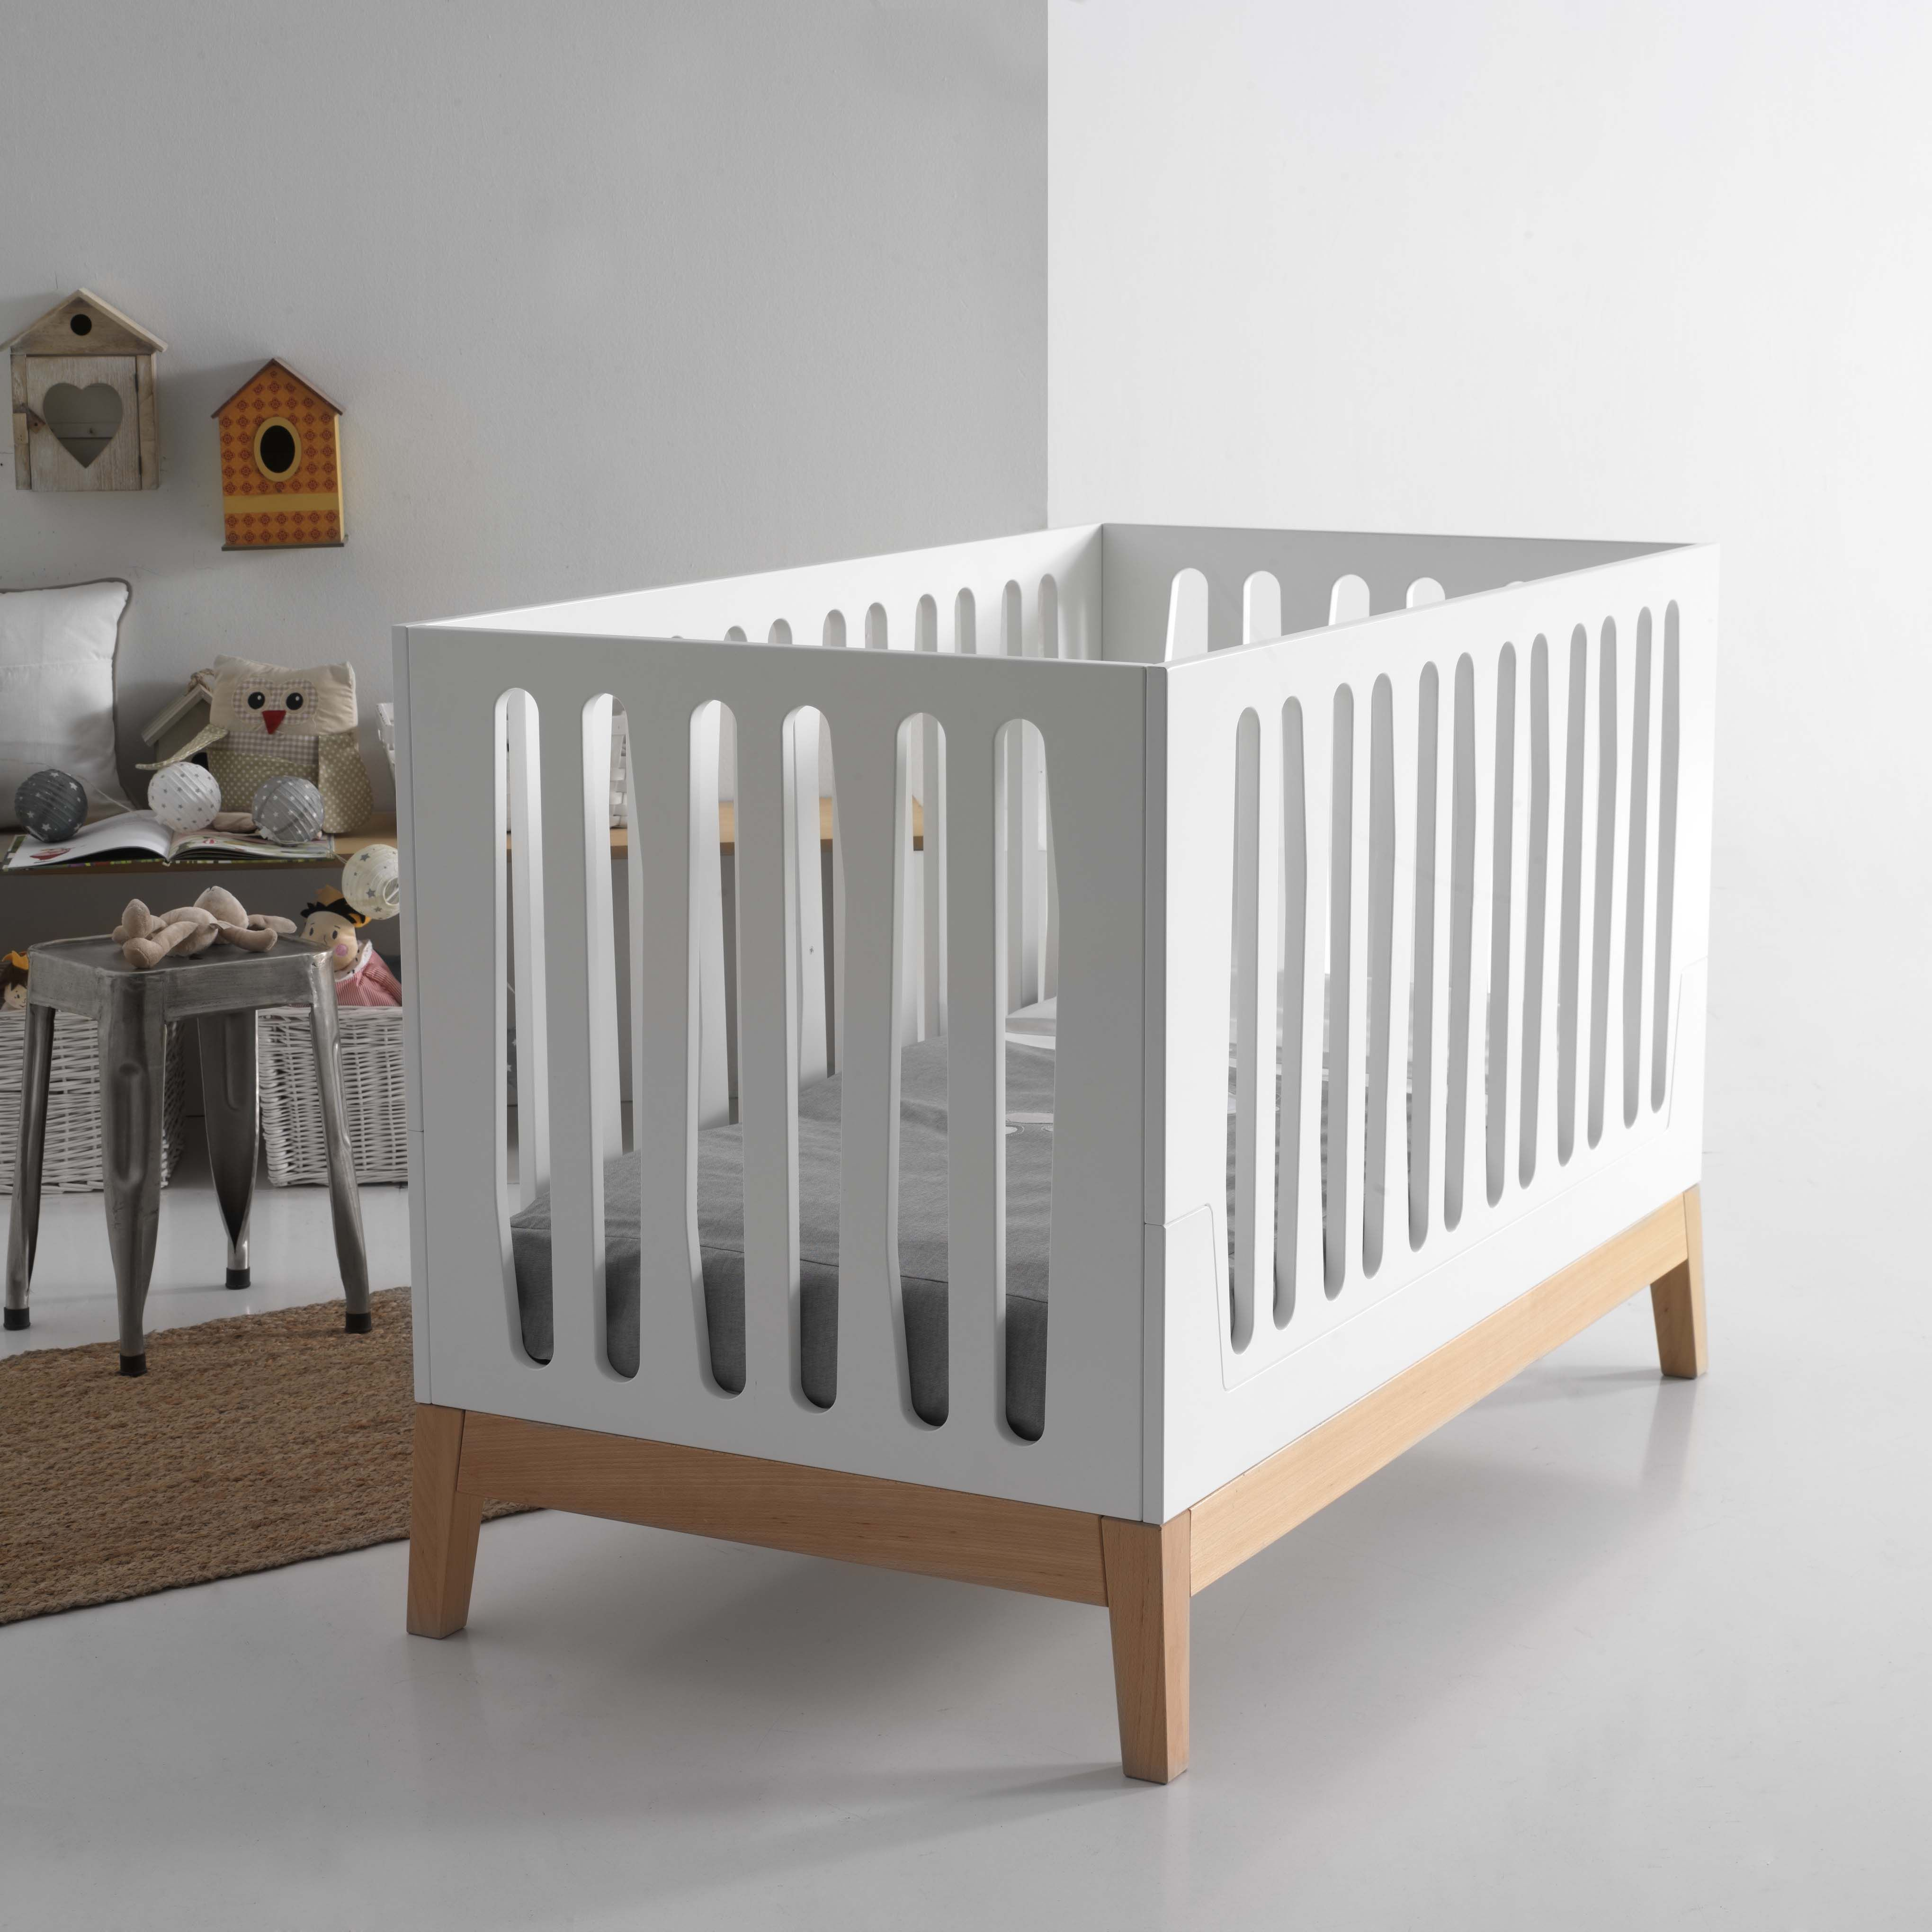 Nubol convertible baby crib Made in Spain now for sale in the US ...